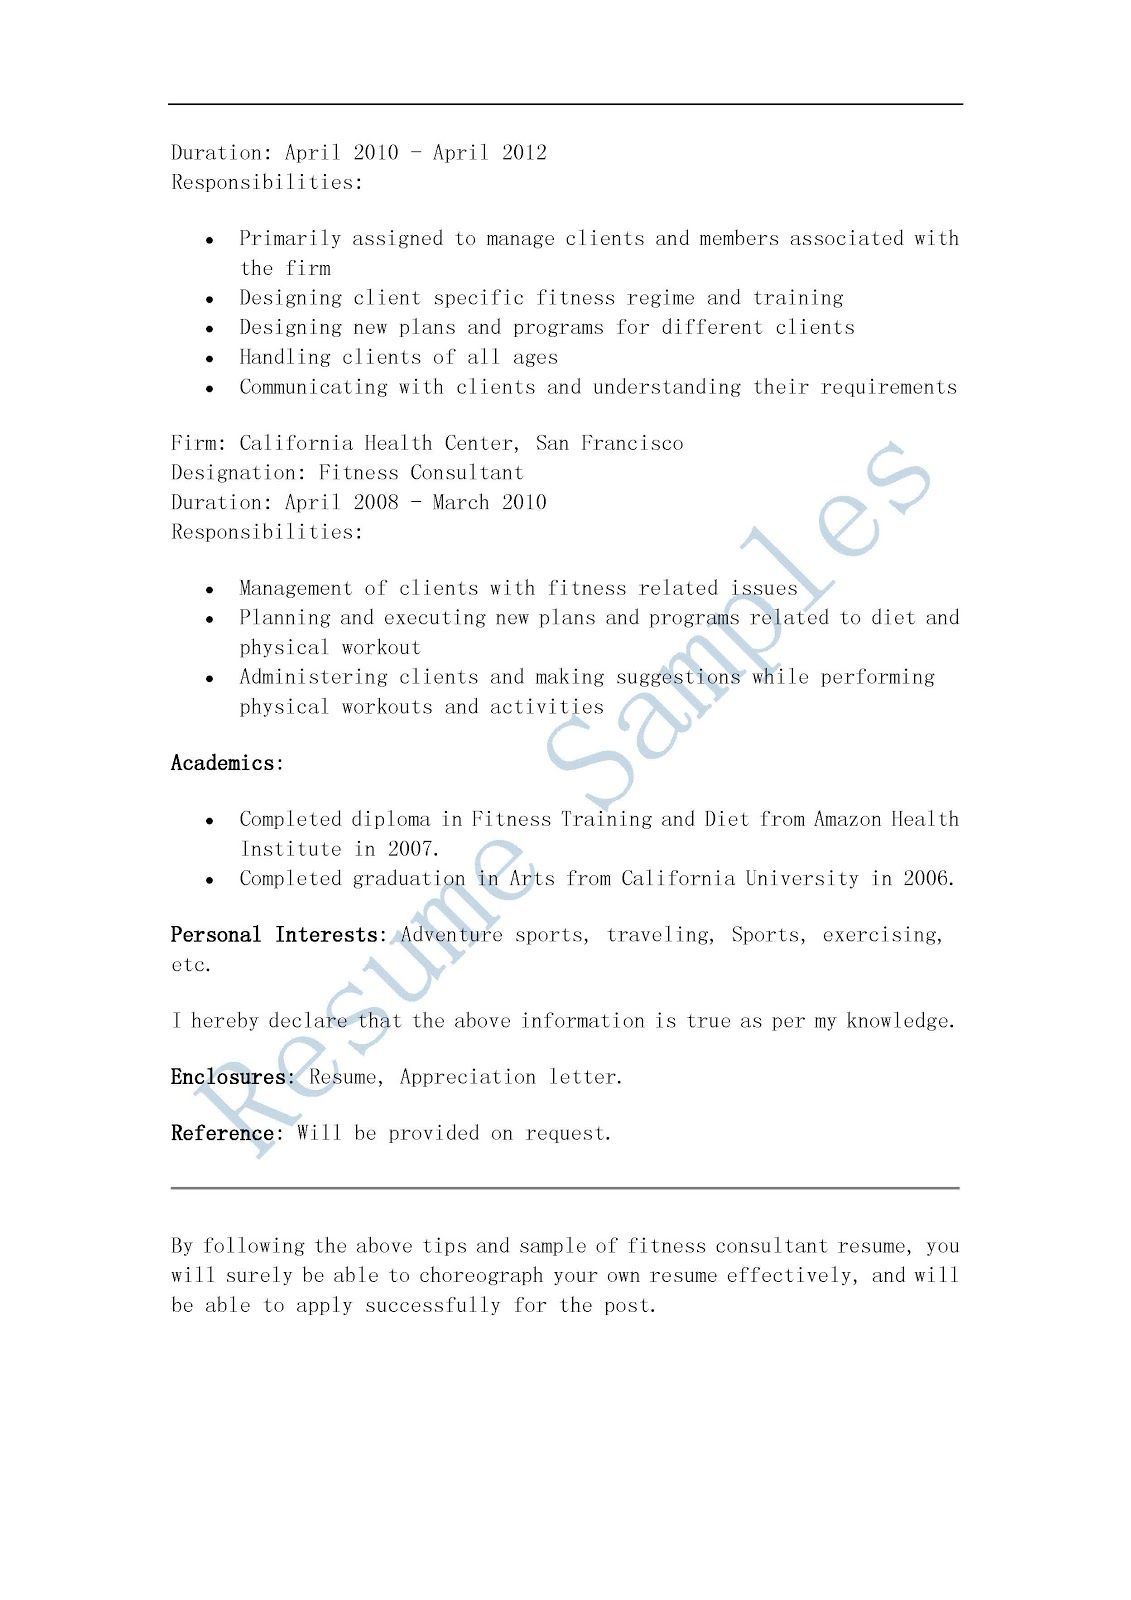 Resume Samples Fitness Consultant Resume, Image result for